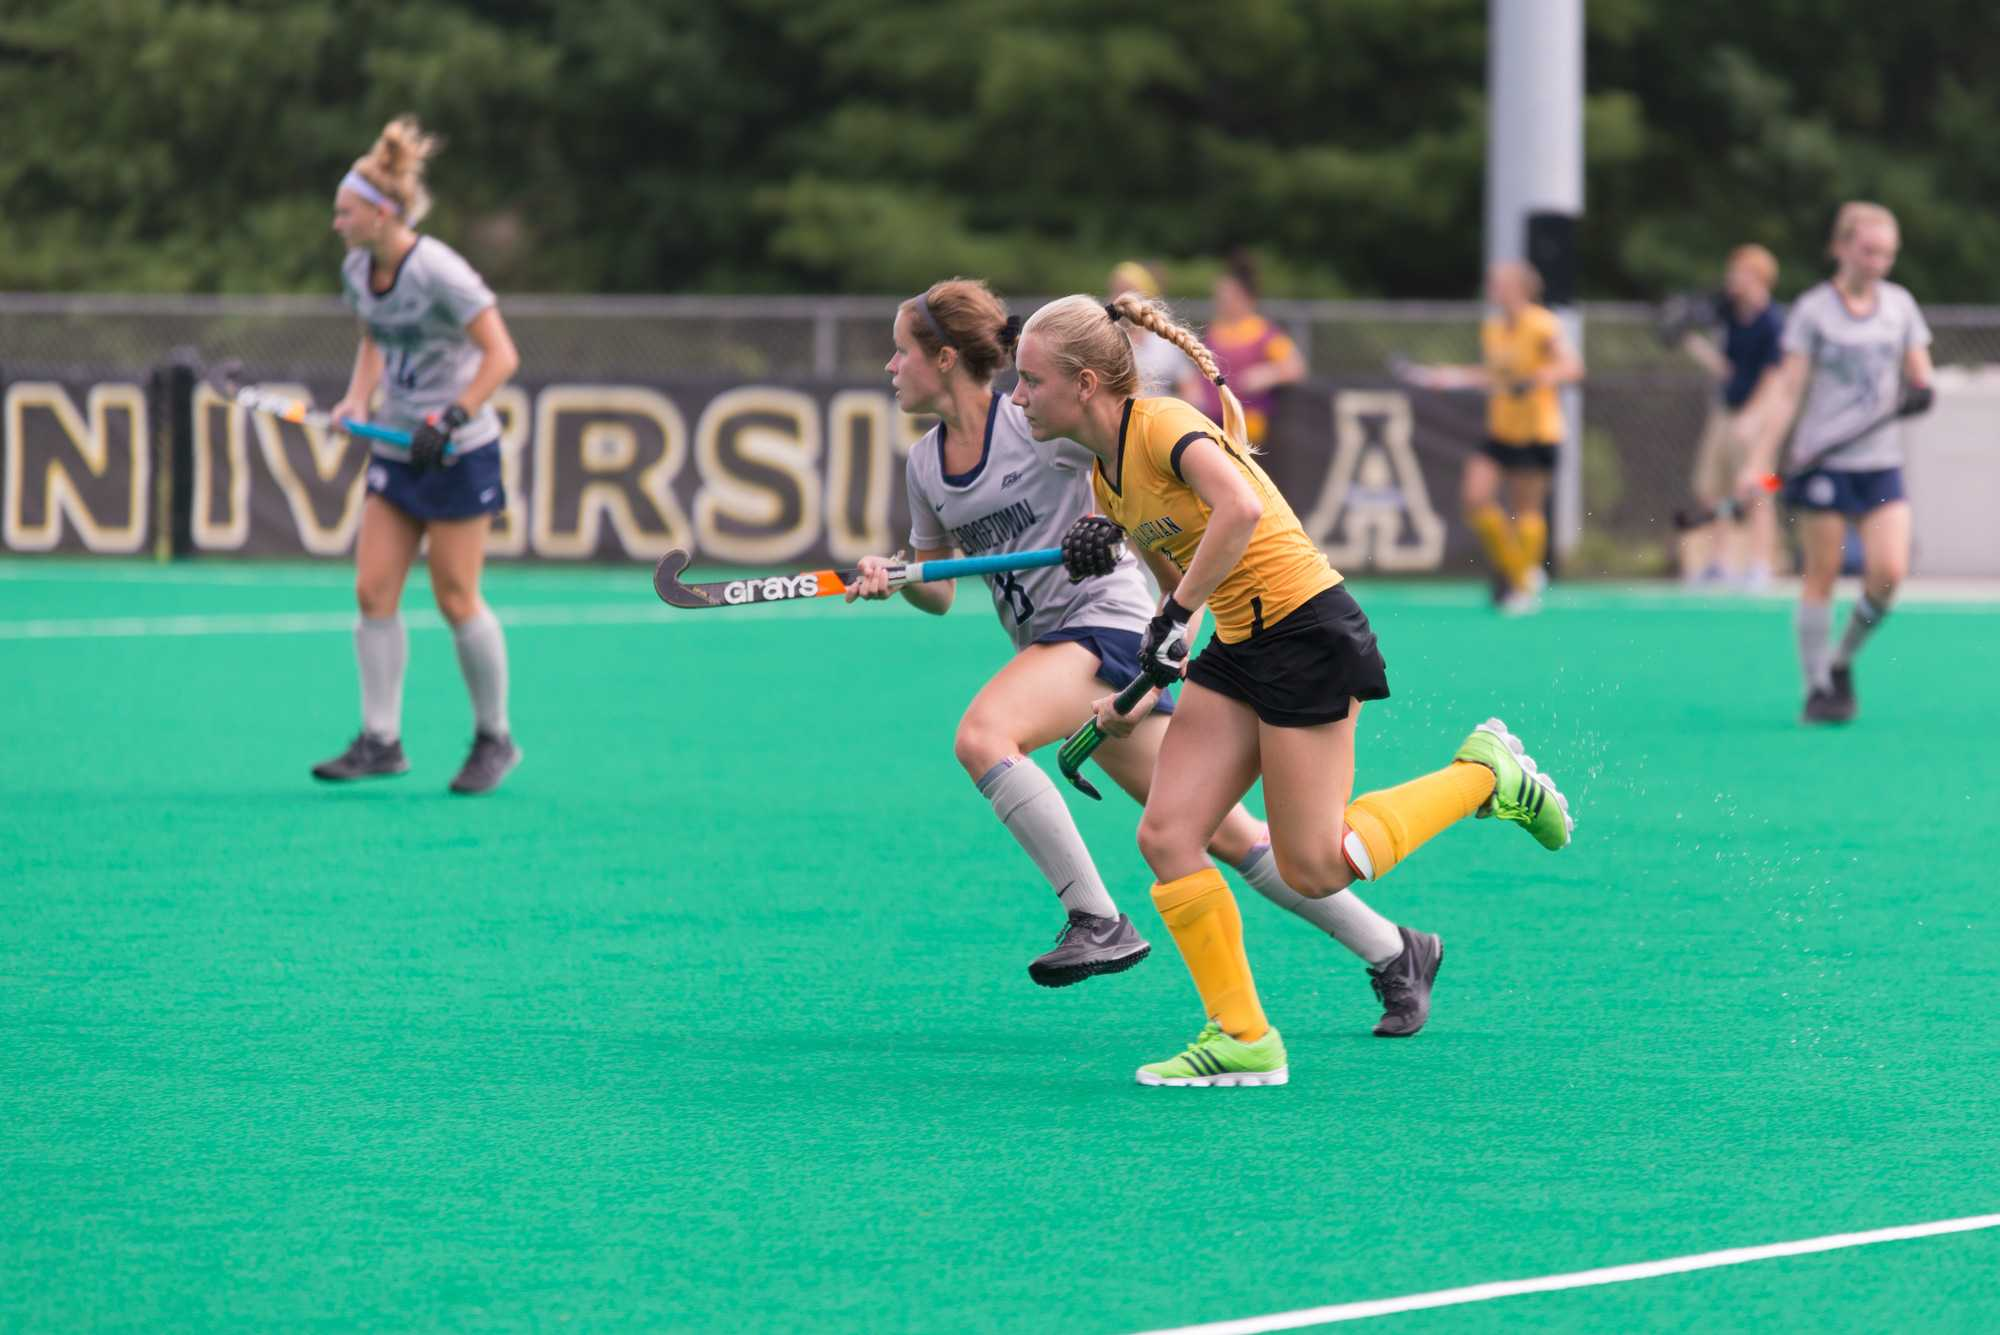 Freshman+midfield%2Fdefense+Julia+Wenz+runs+down+the+field+during+the+game+against+Georgetown+on+Sunday.+Photo+by+Dallas+Linger%2C+Photo+Editor